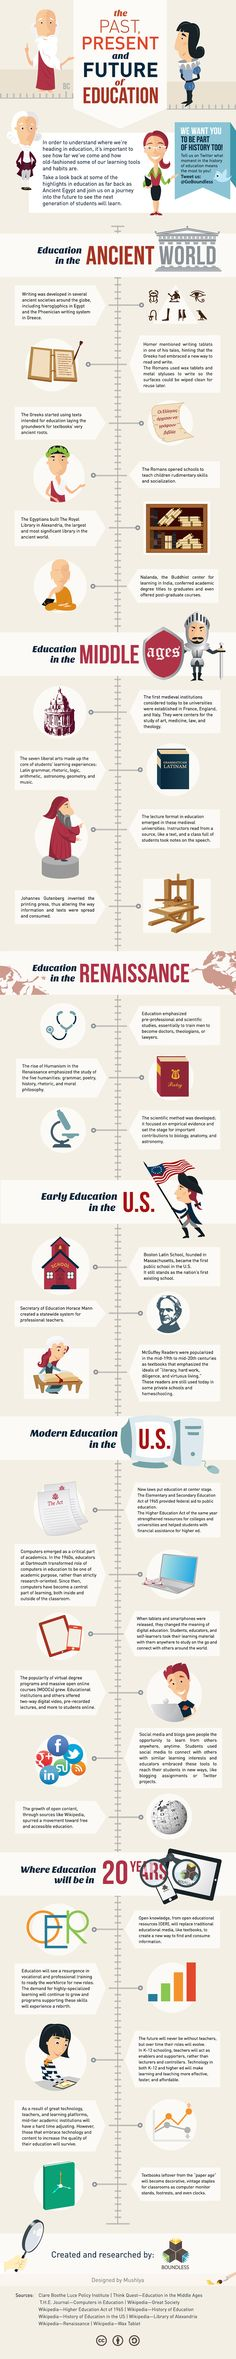 History of #Education #Infographic